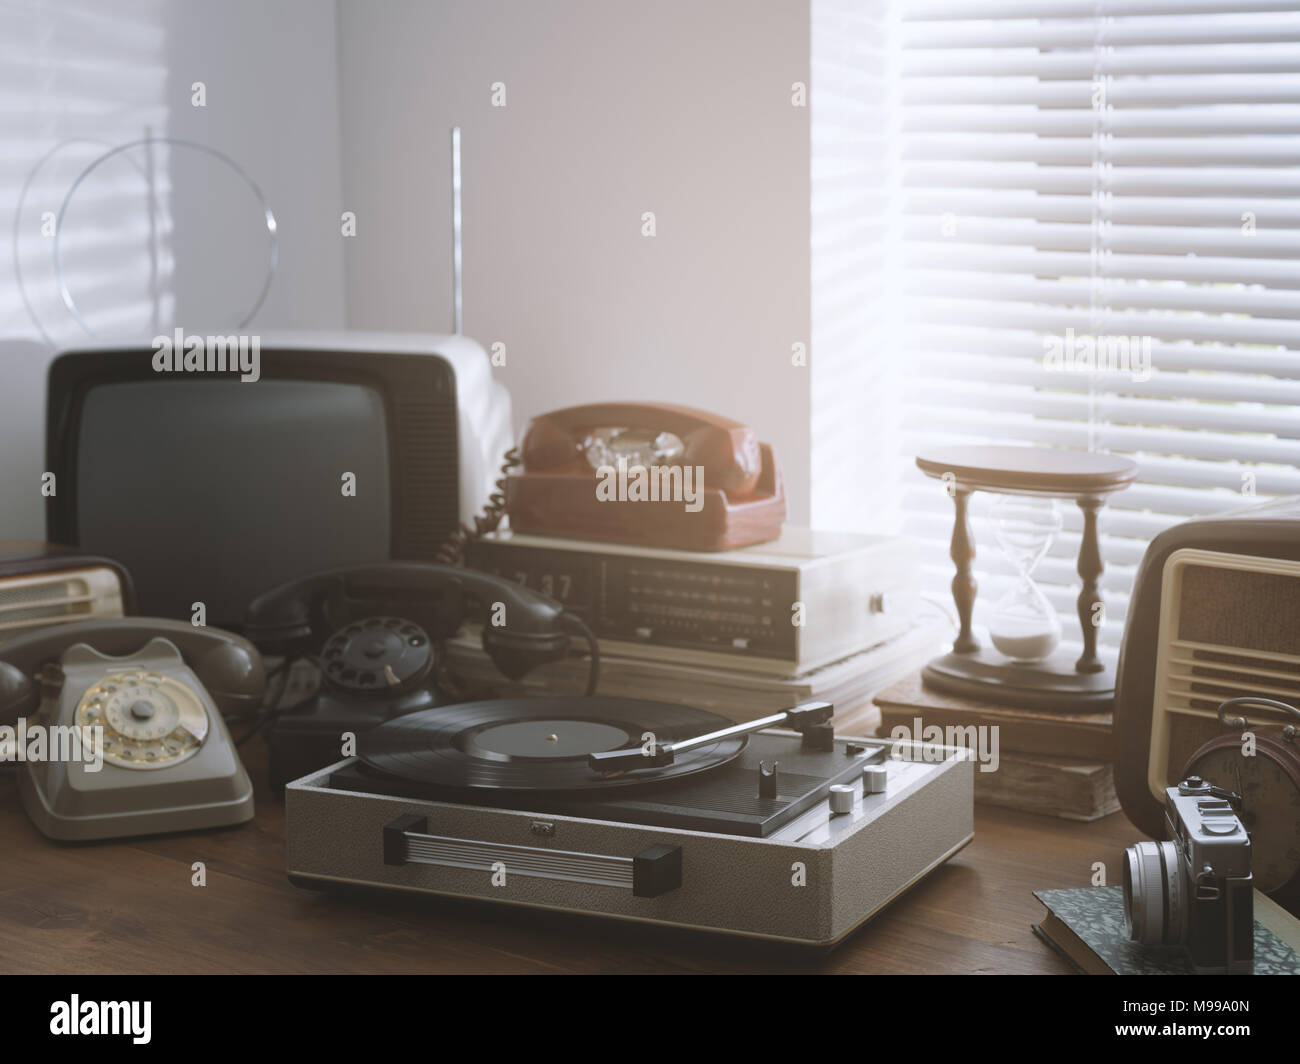 Vintage retro revival objects and second-hand appliances collection on a table: record player, television, radio and rotary dial telephones - Stock Image